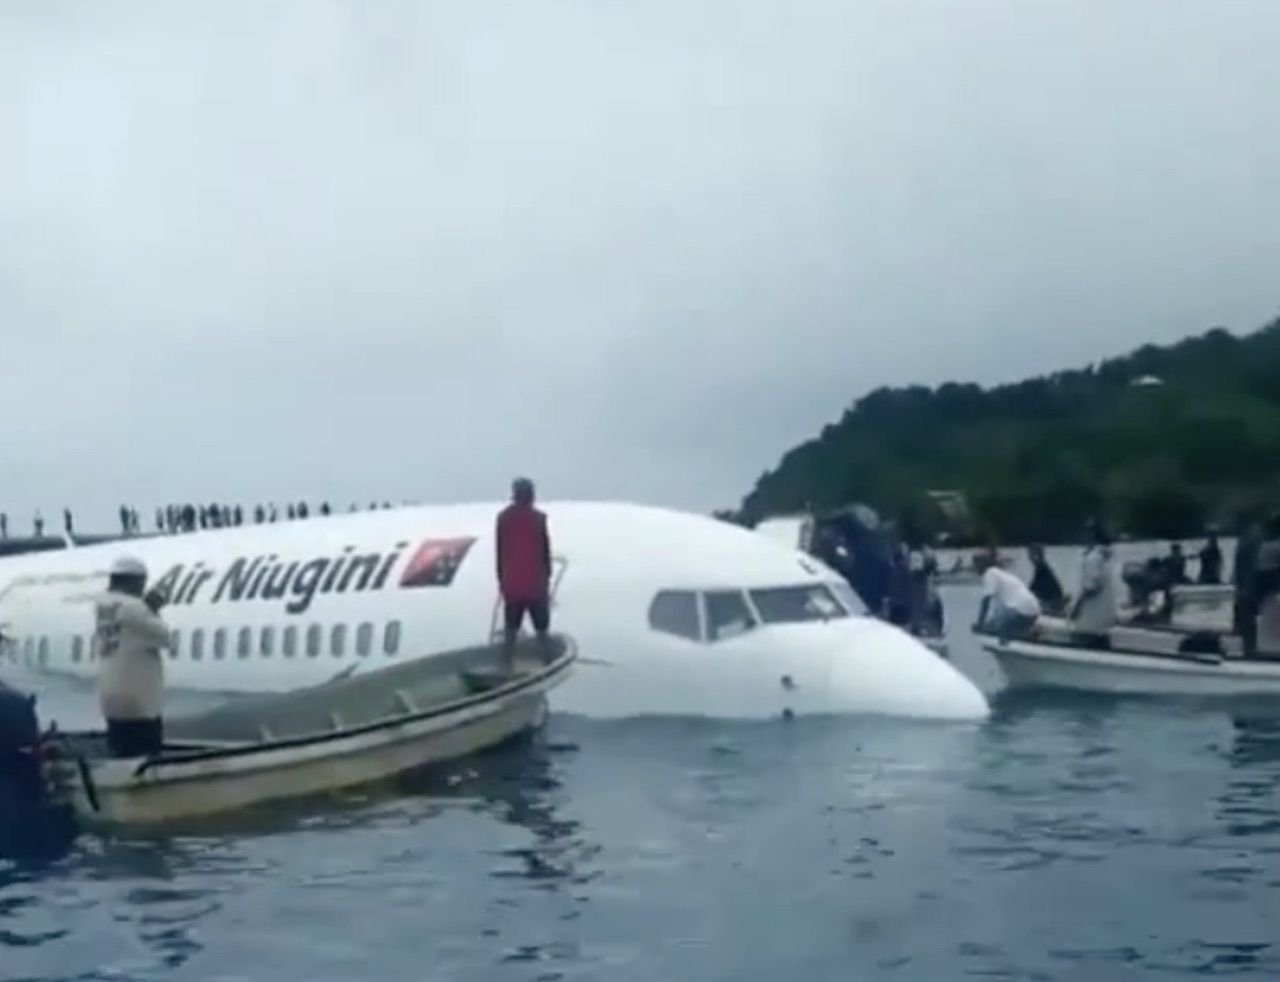 Air Niugini flight crash landed in a lagoon